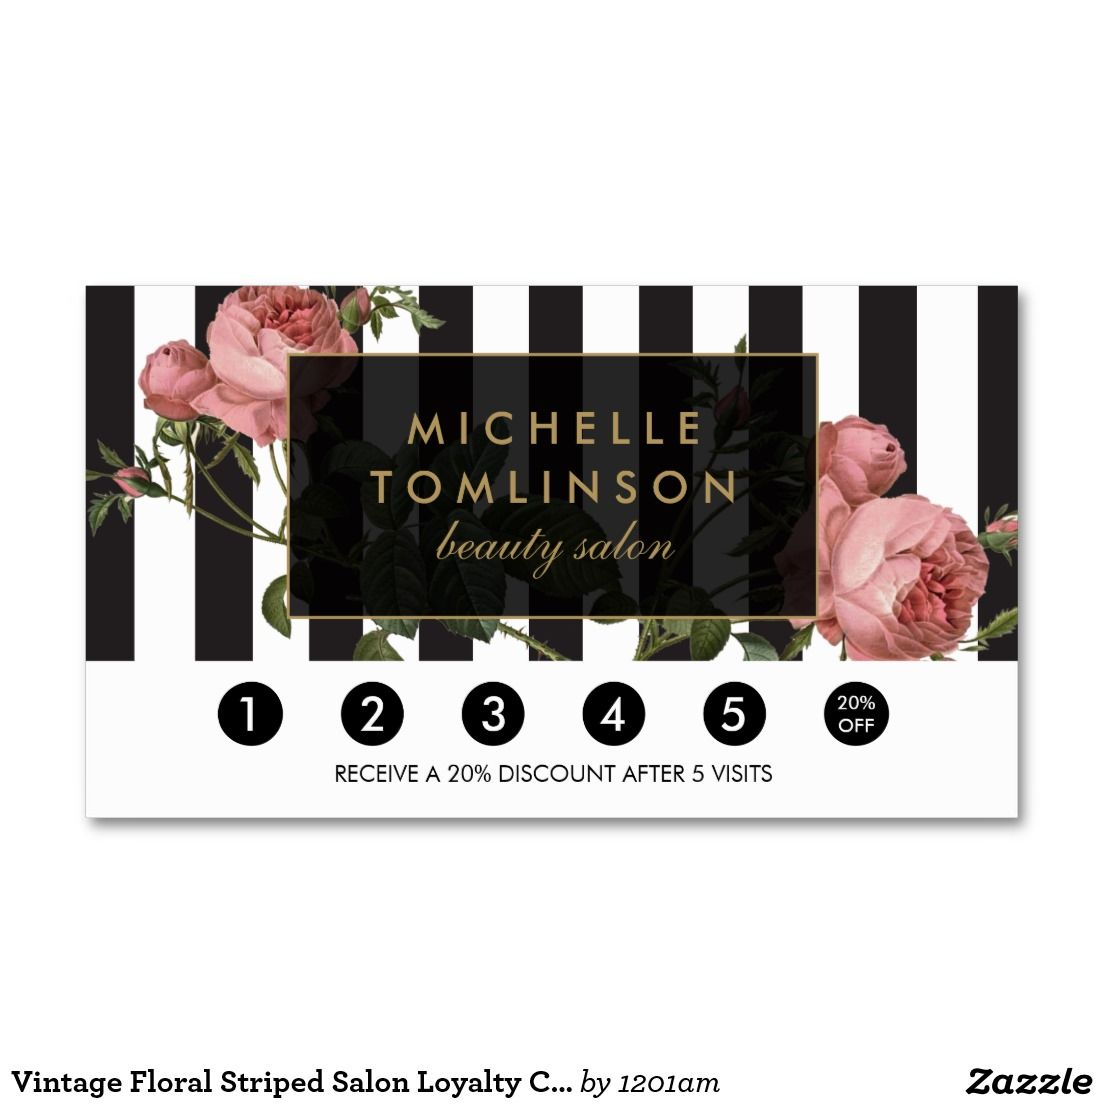 Vintage Floral Striped Salon Loyalty Card Business Card | "|1104|1104|?|en|2|1f46f44542243b9a6d2983a7e6b11db8|False|UNLIKELY|0.37659934163093567